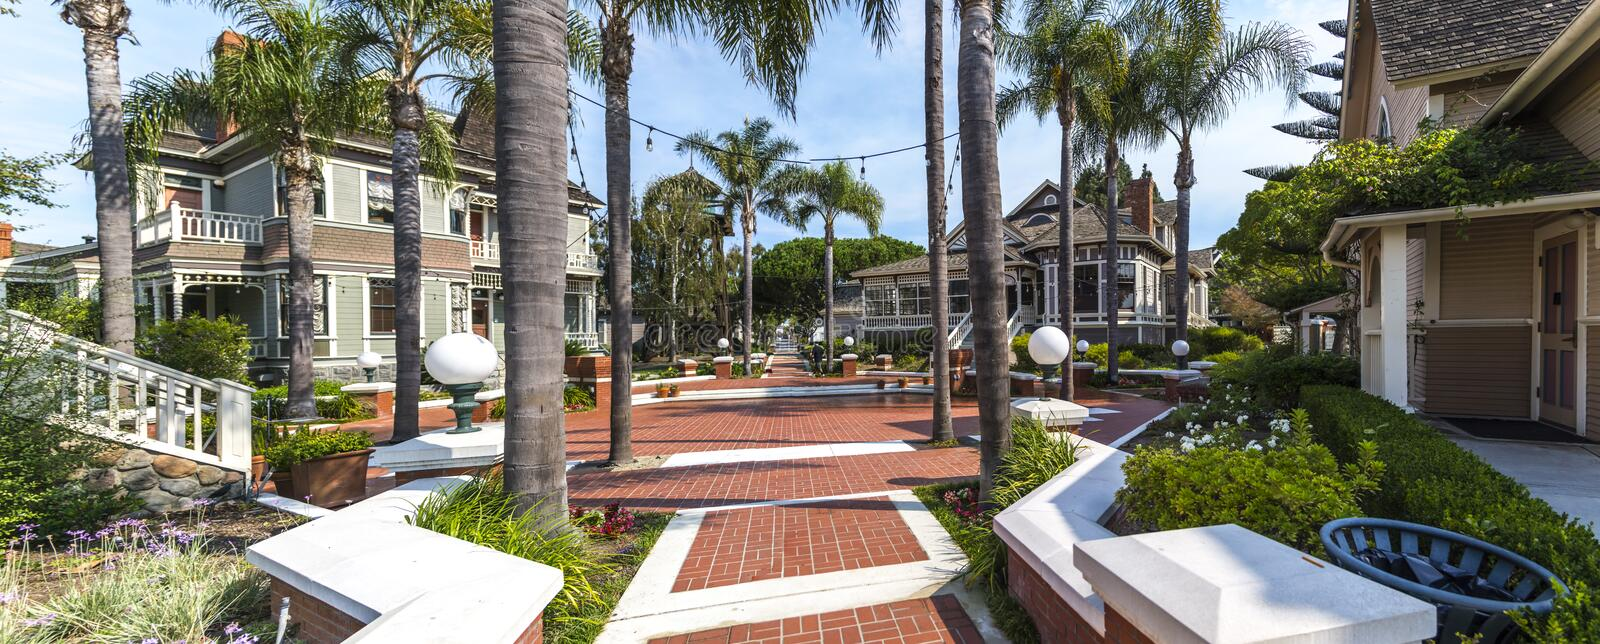 Panoramic View of Heritage Square in Oxnard, California. A panoramic view of several historic homes at Heritage Square in Oxnard, California stock photos